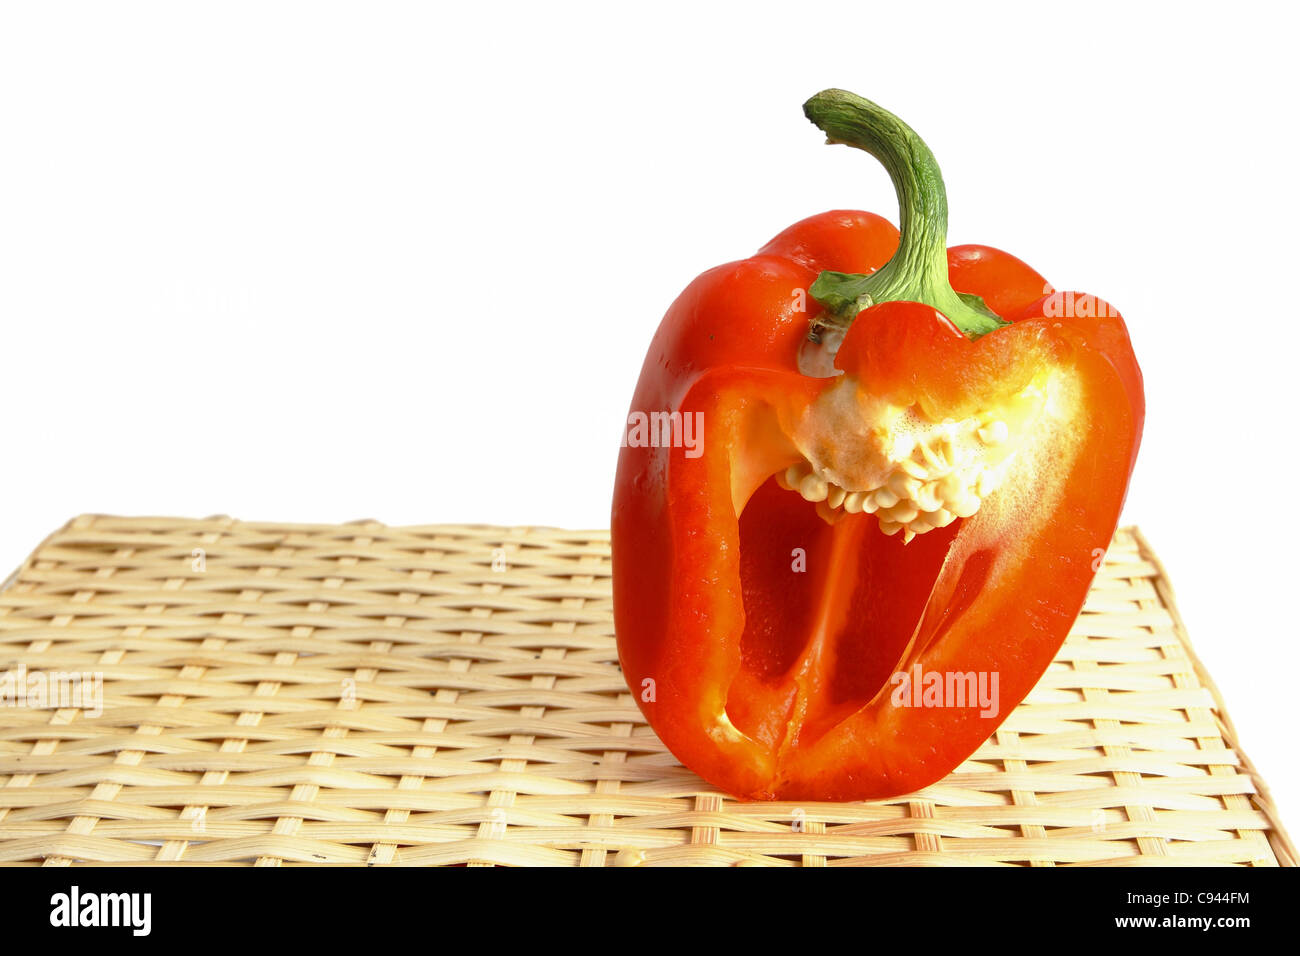 red paprika - Stock Image